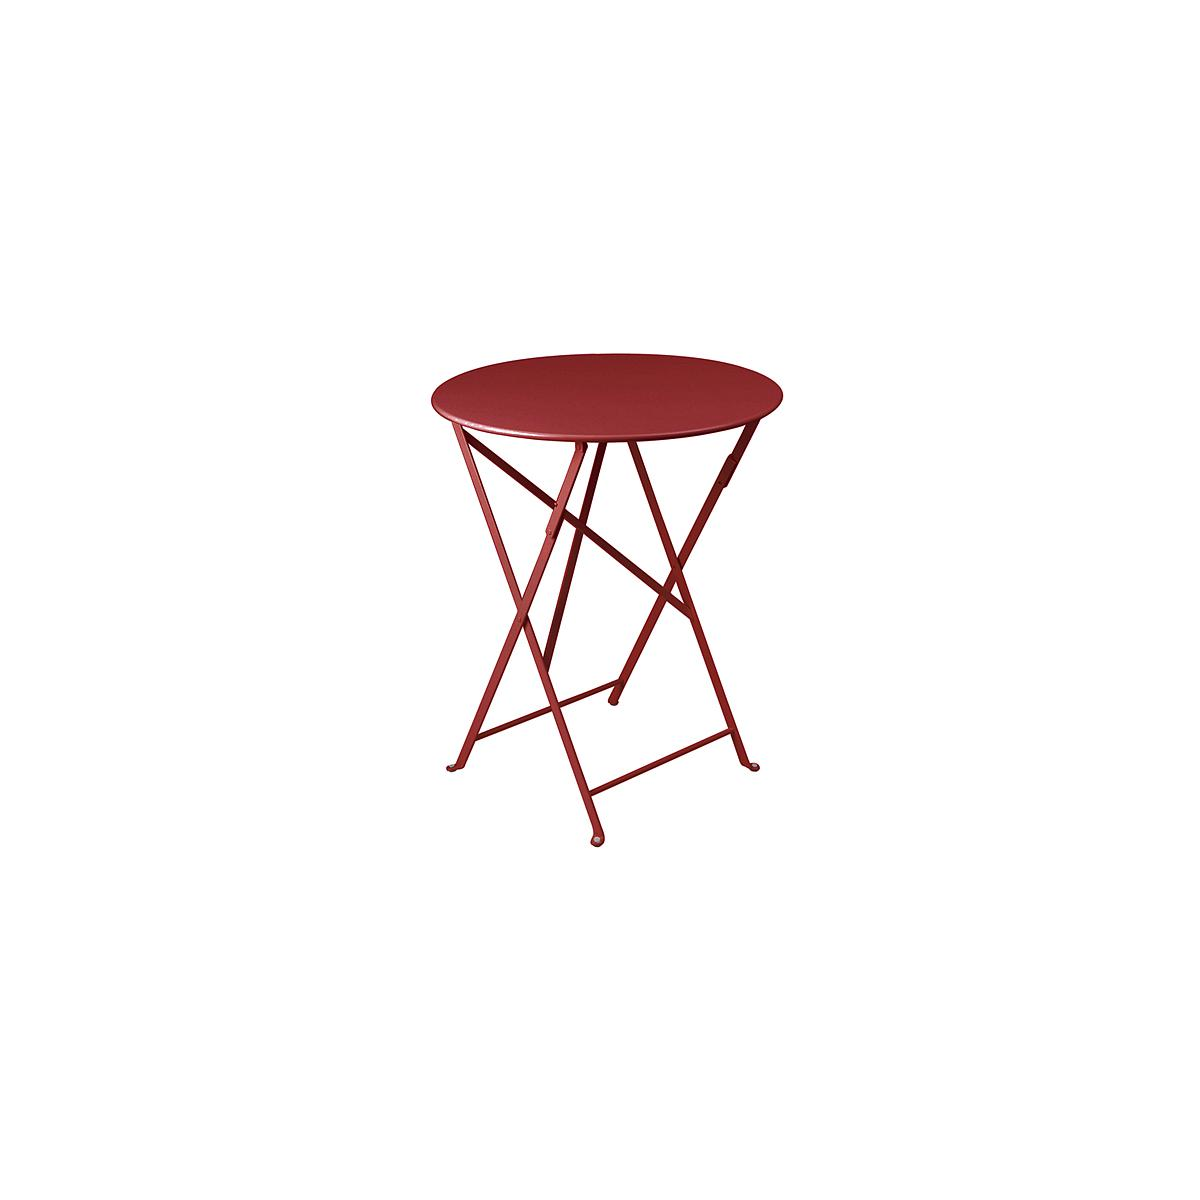 BISTRO by Fermob Table ronde 60cm Rouge piment